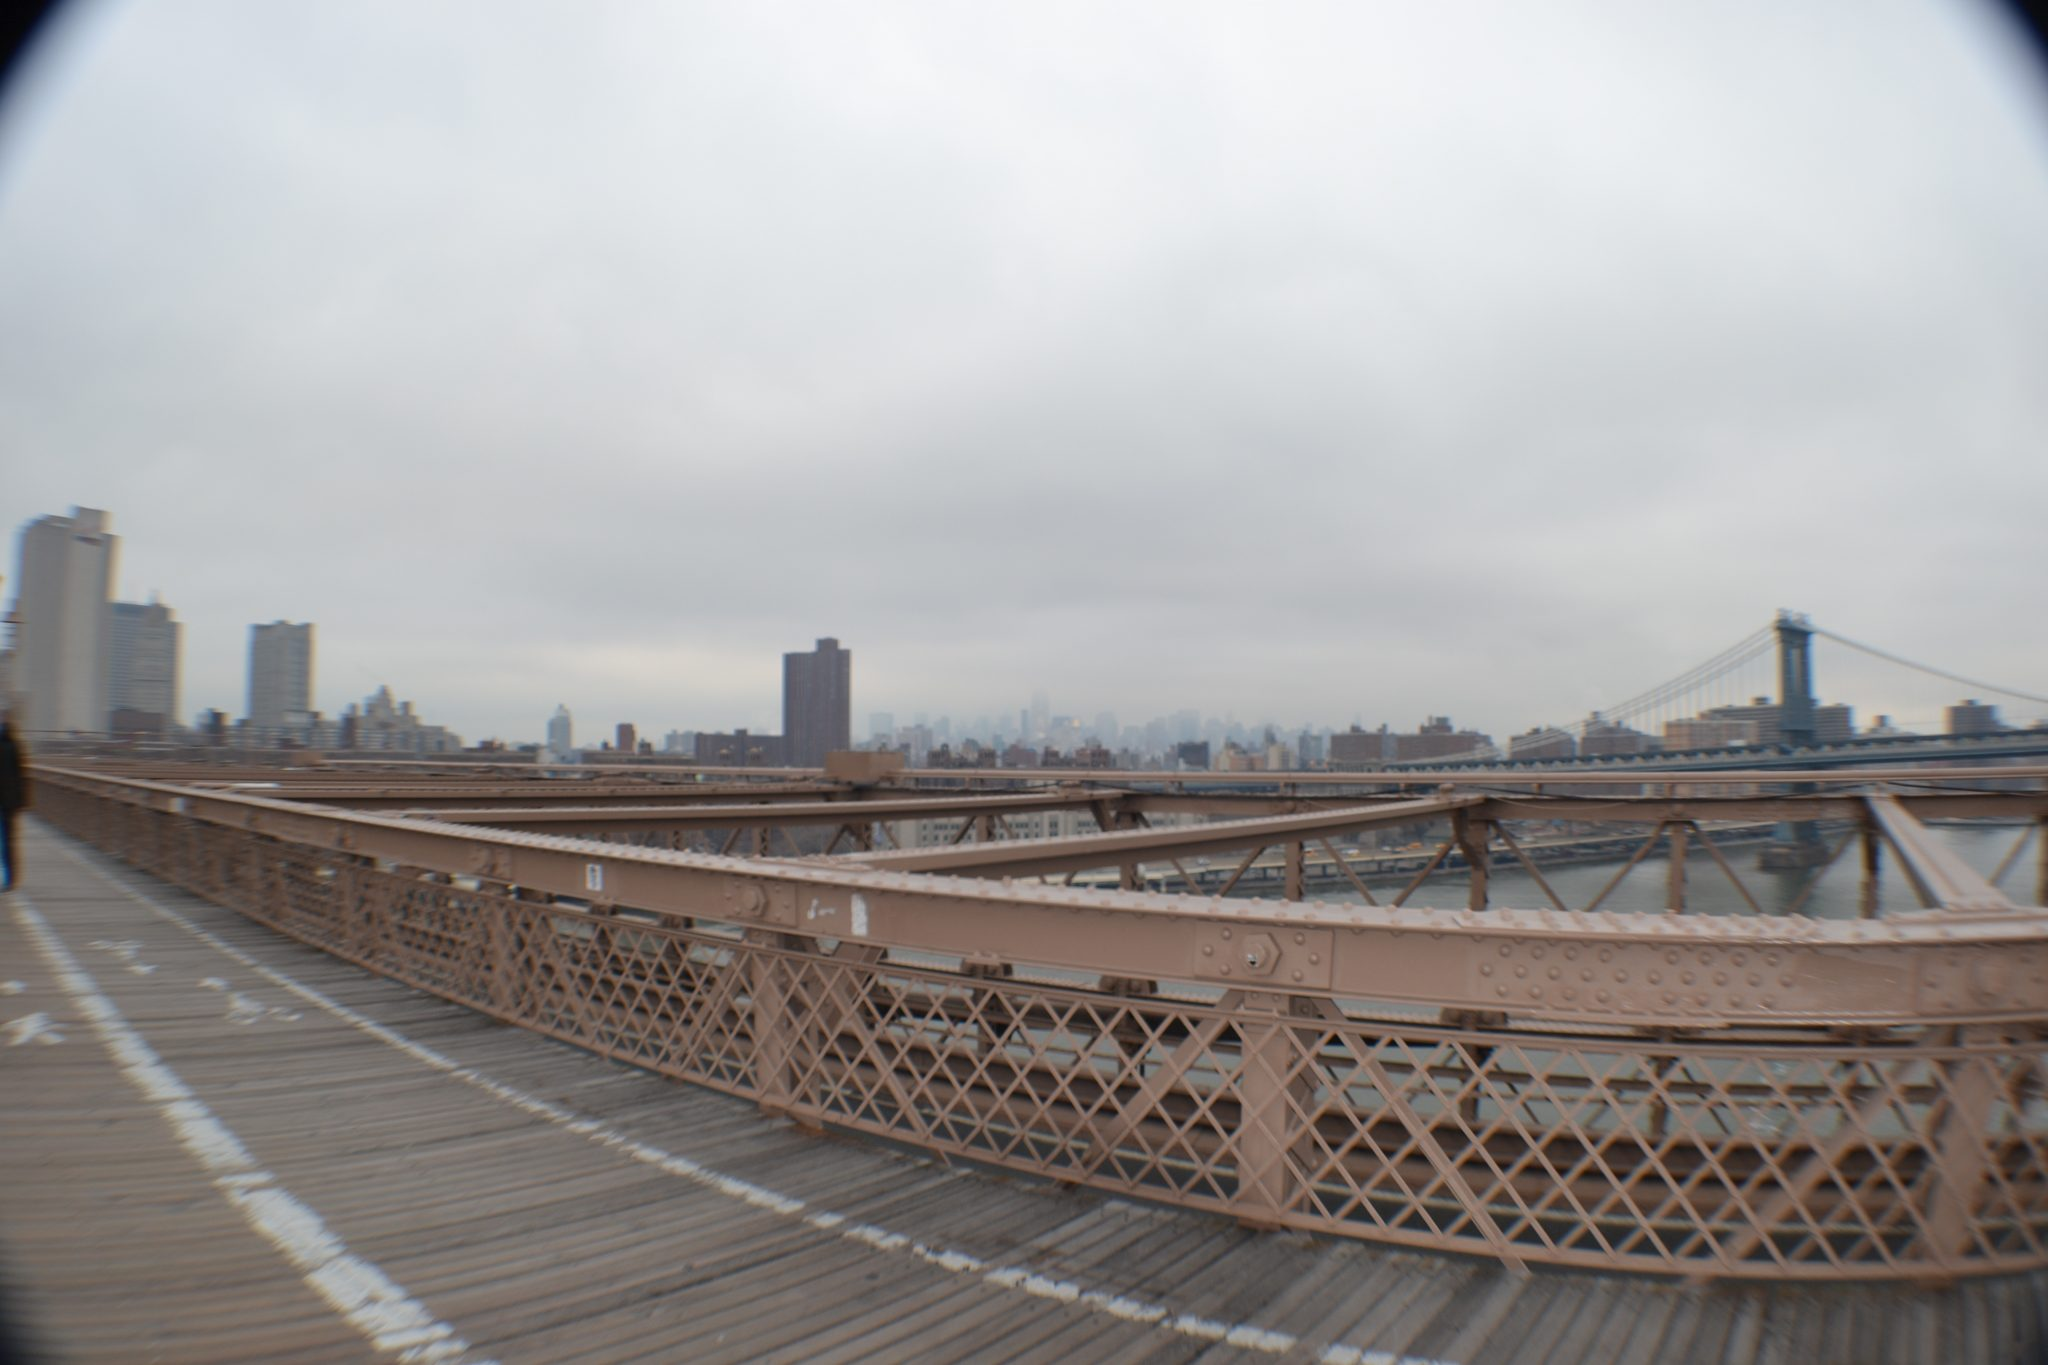 New York Part 6: Brooklyn Bridge & Citystore - dsc 0034